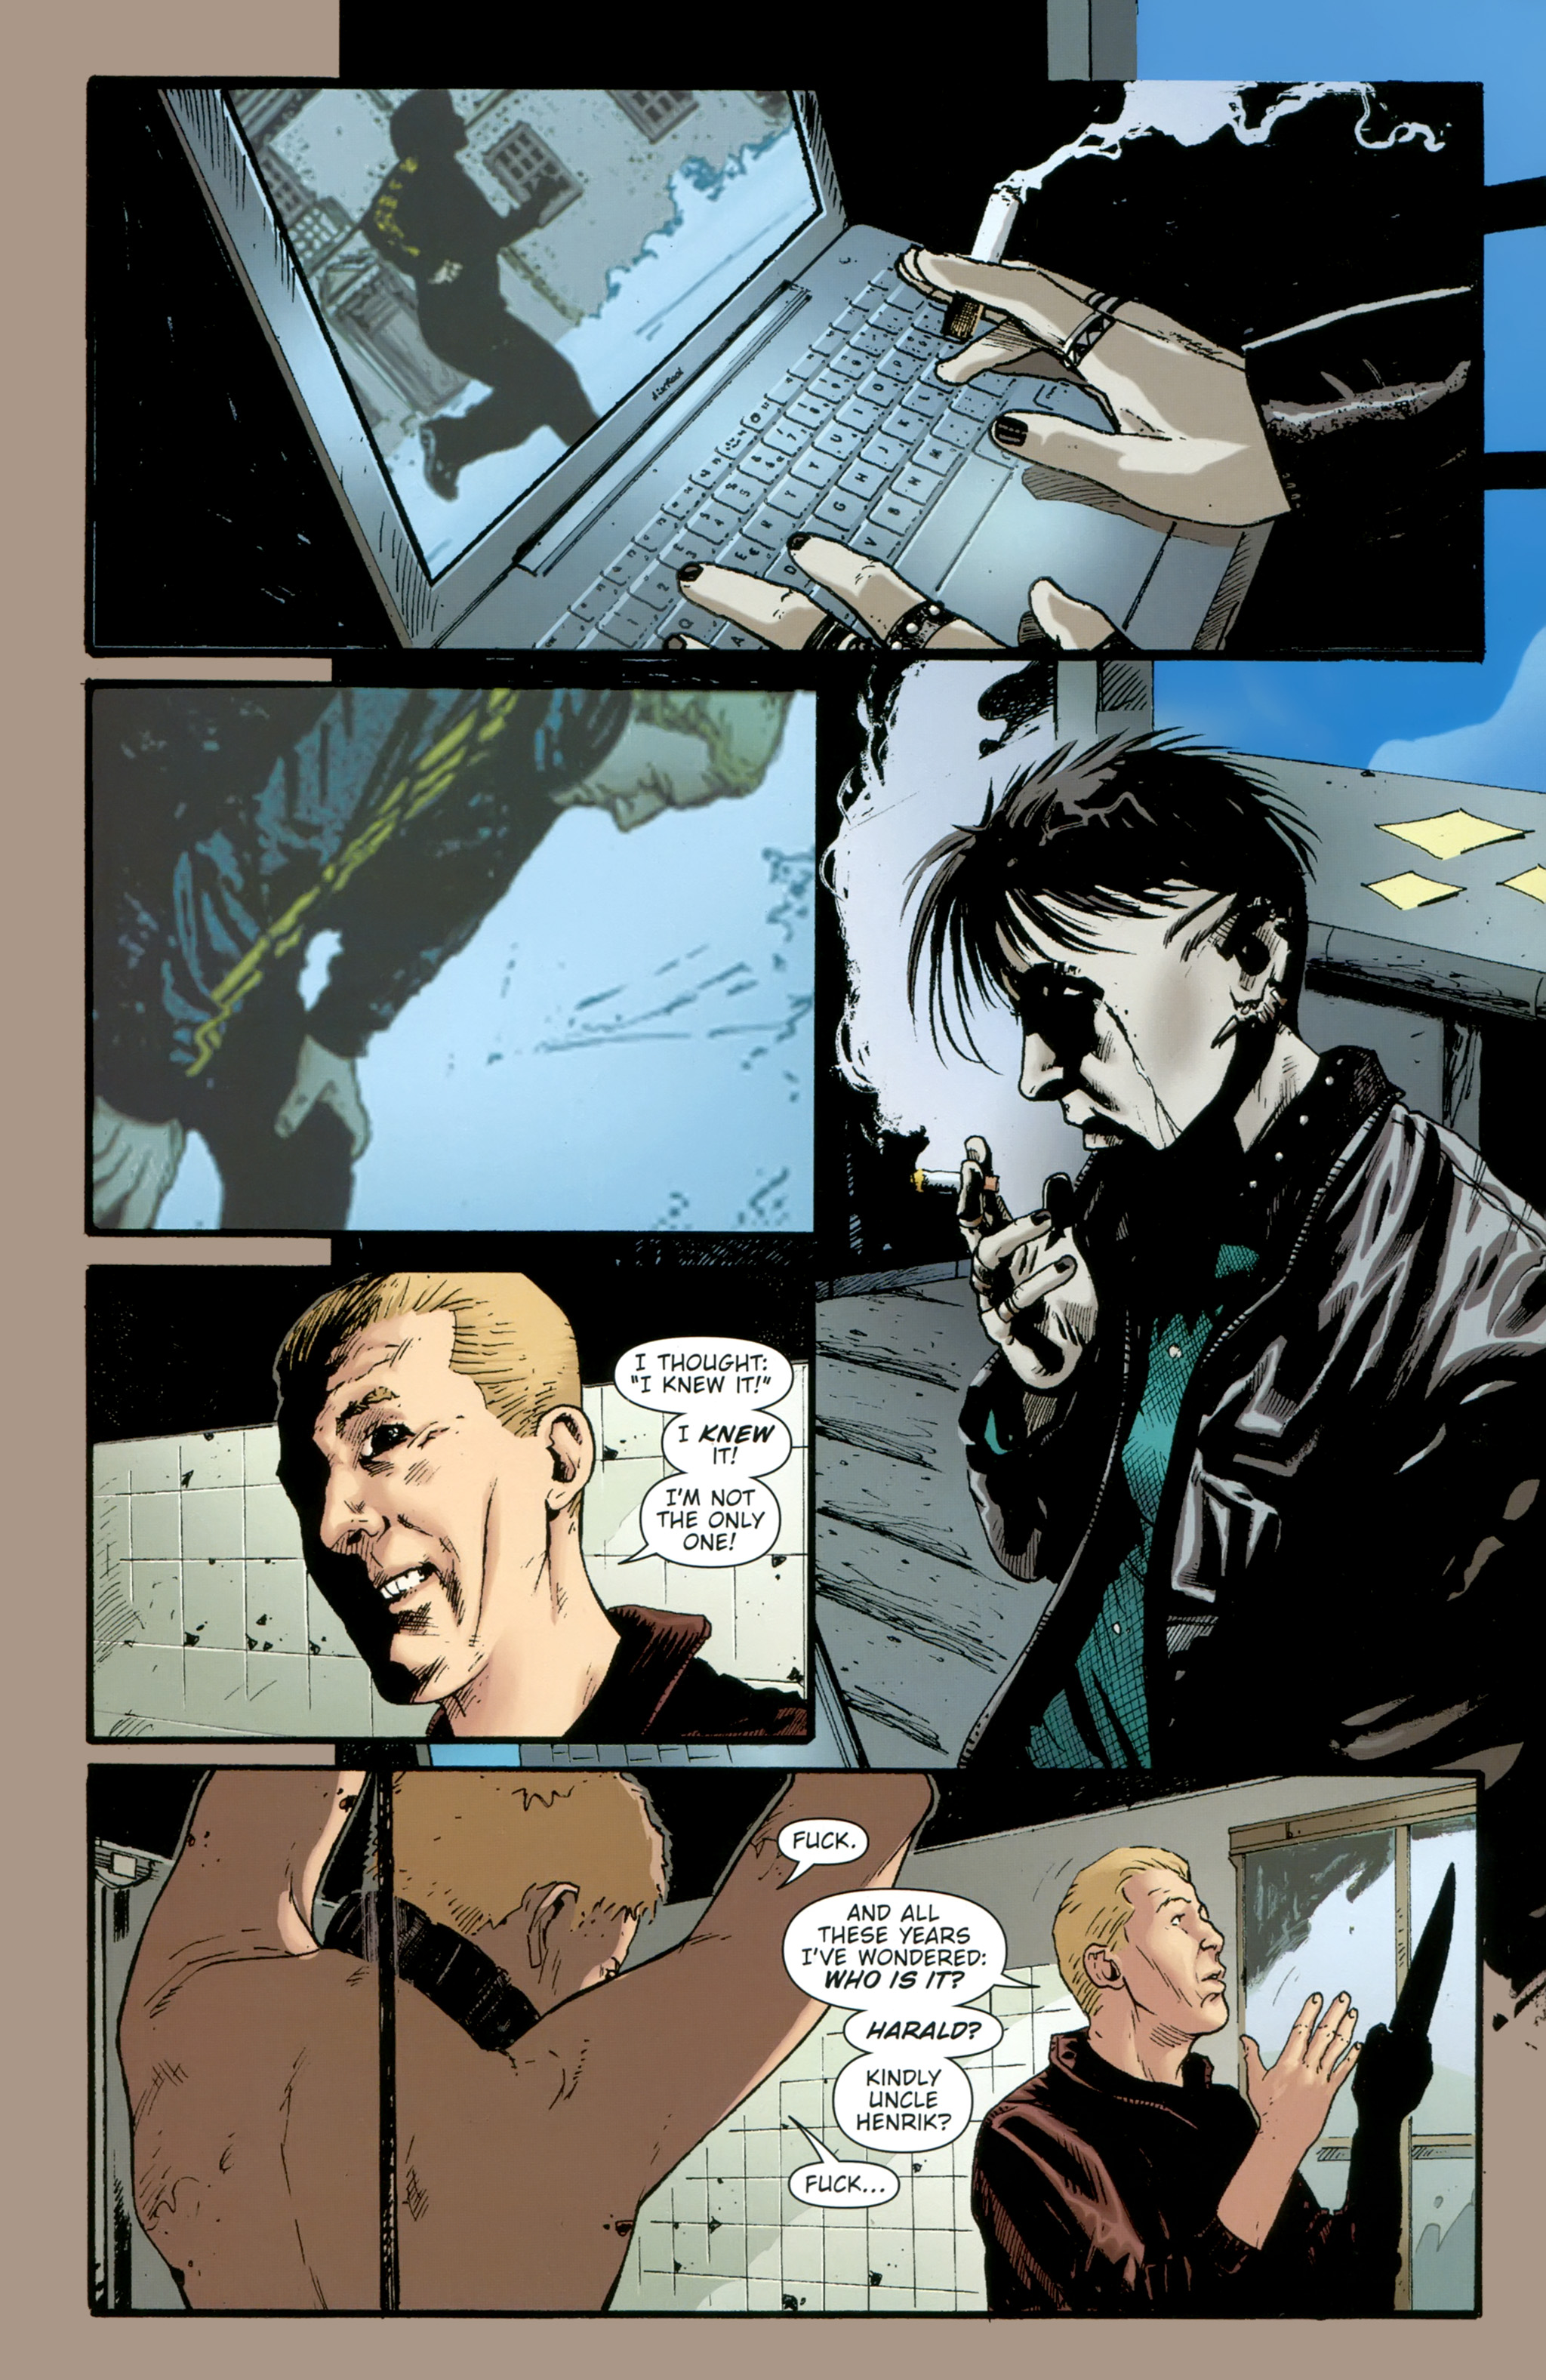 Read online The Girl With the Dragon Tattoo comic -  Issue # TPB 2 - 96